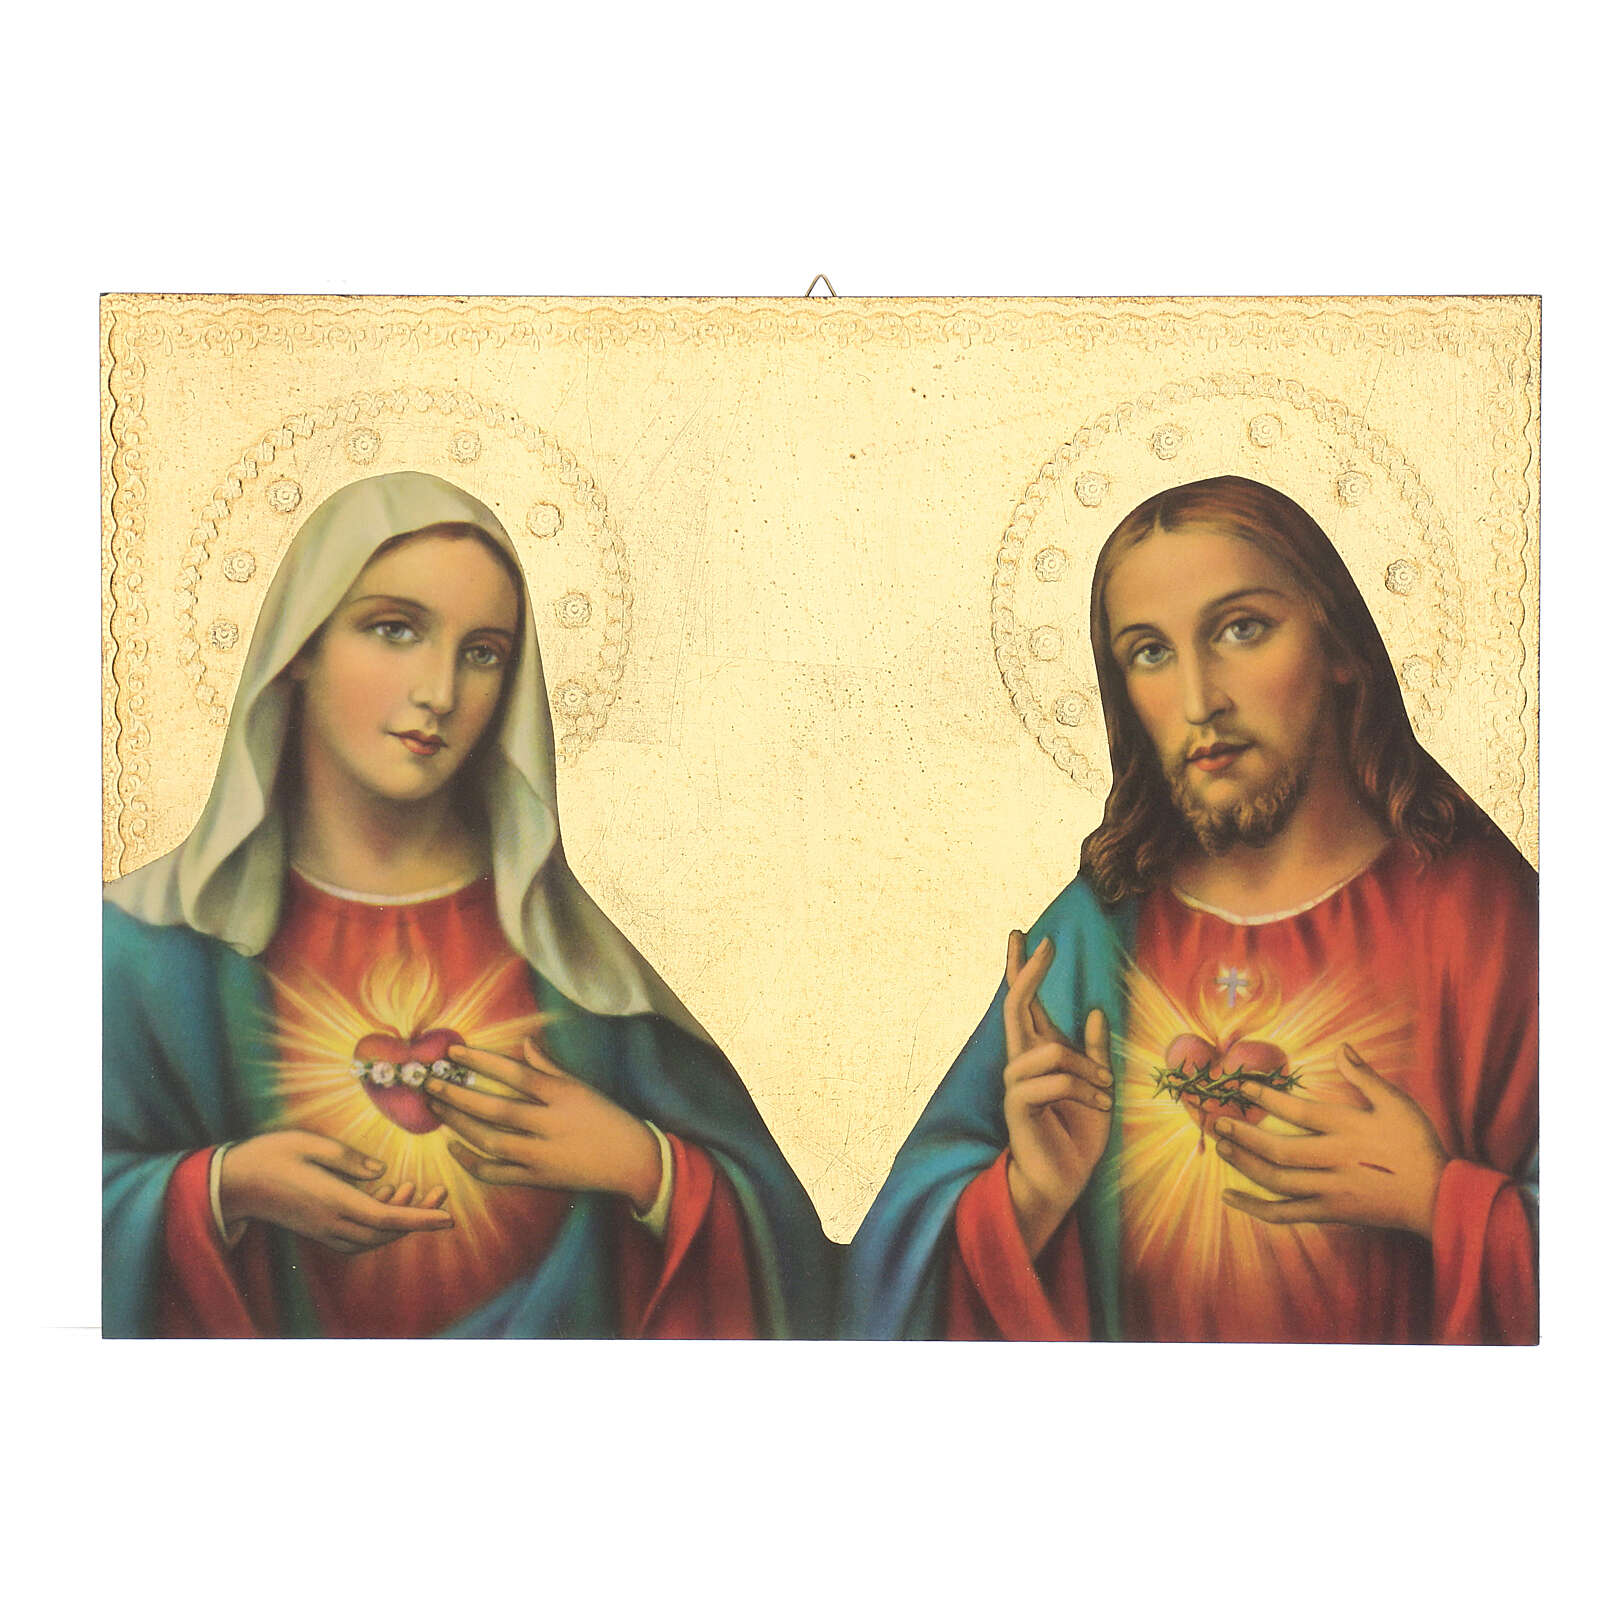 Immaculate Heart of Mary and Sacred Heart of Jesus wood print image 35x25 cm 3